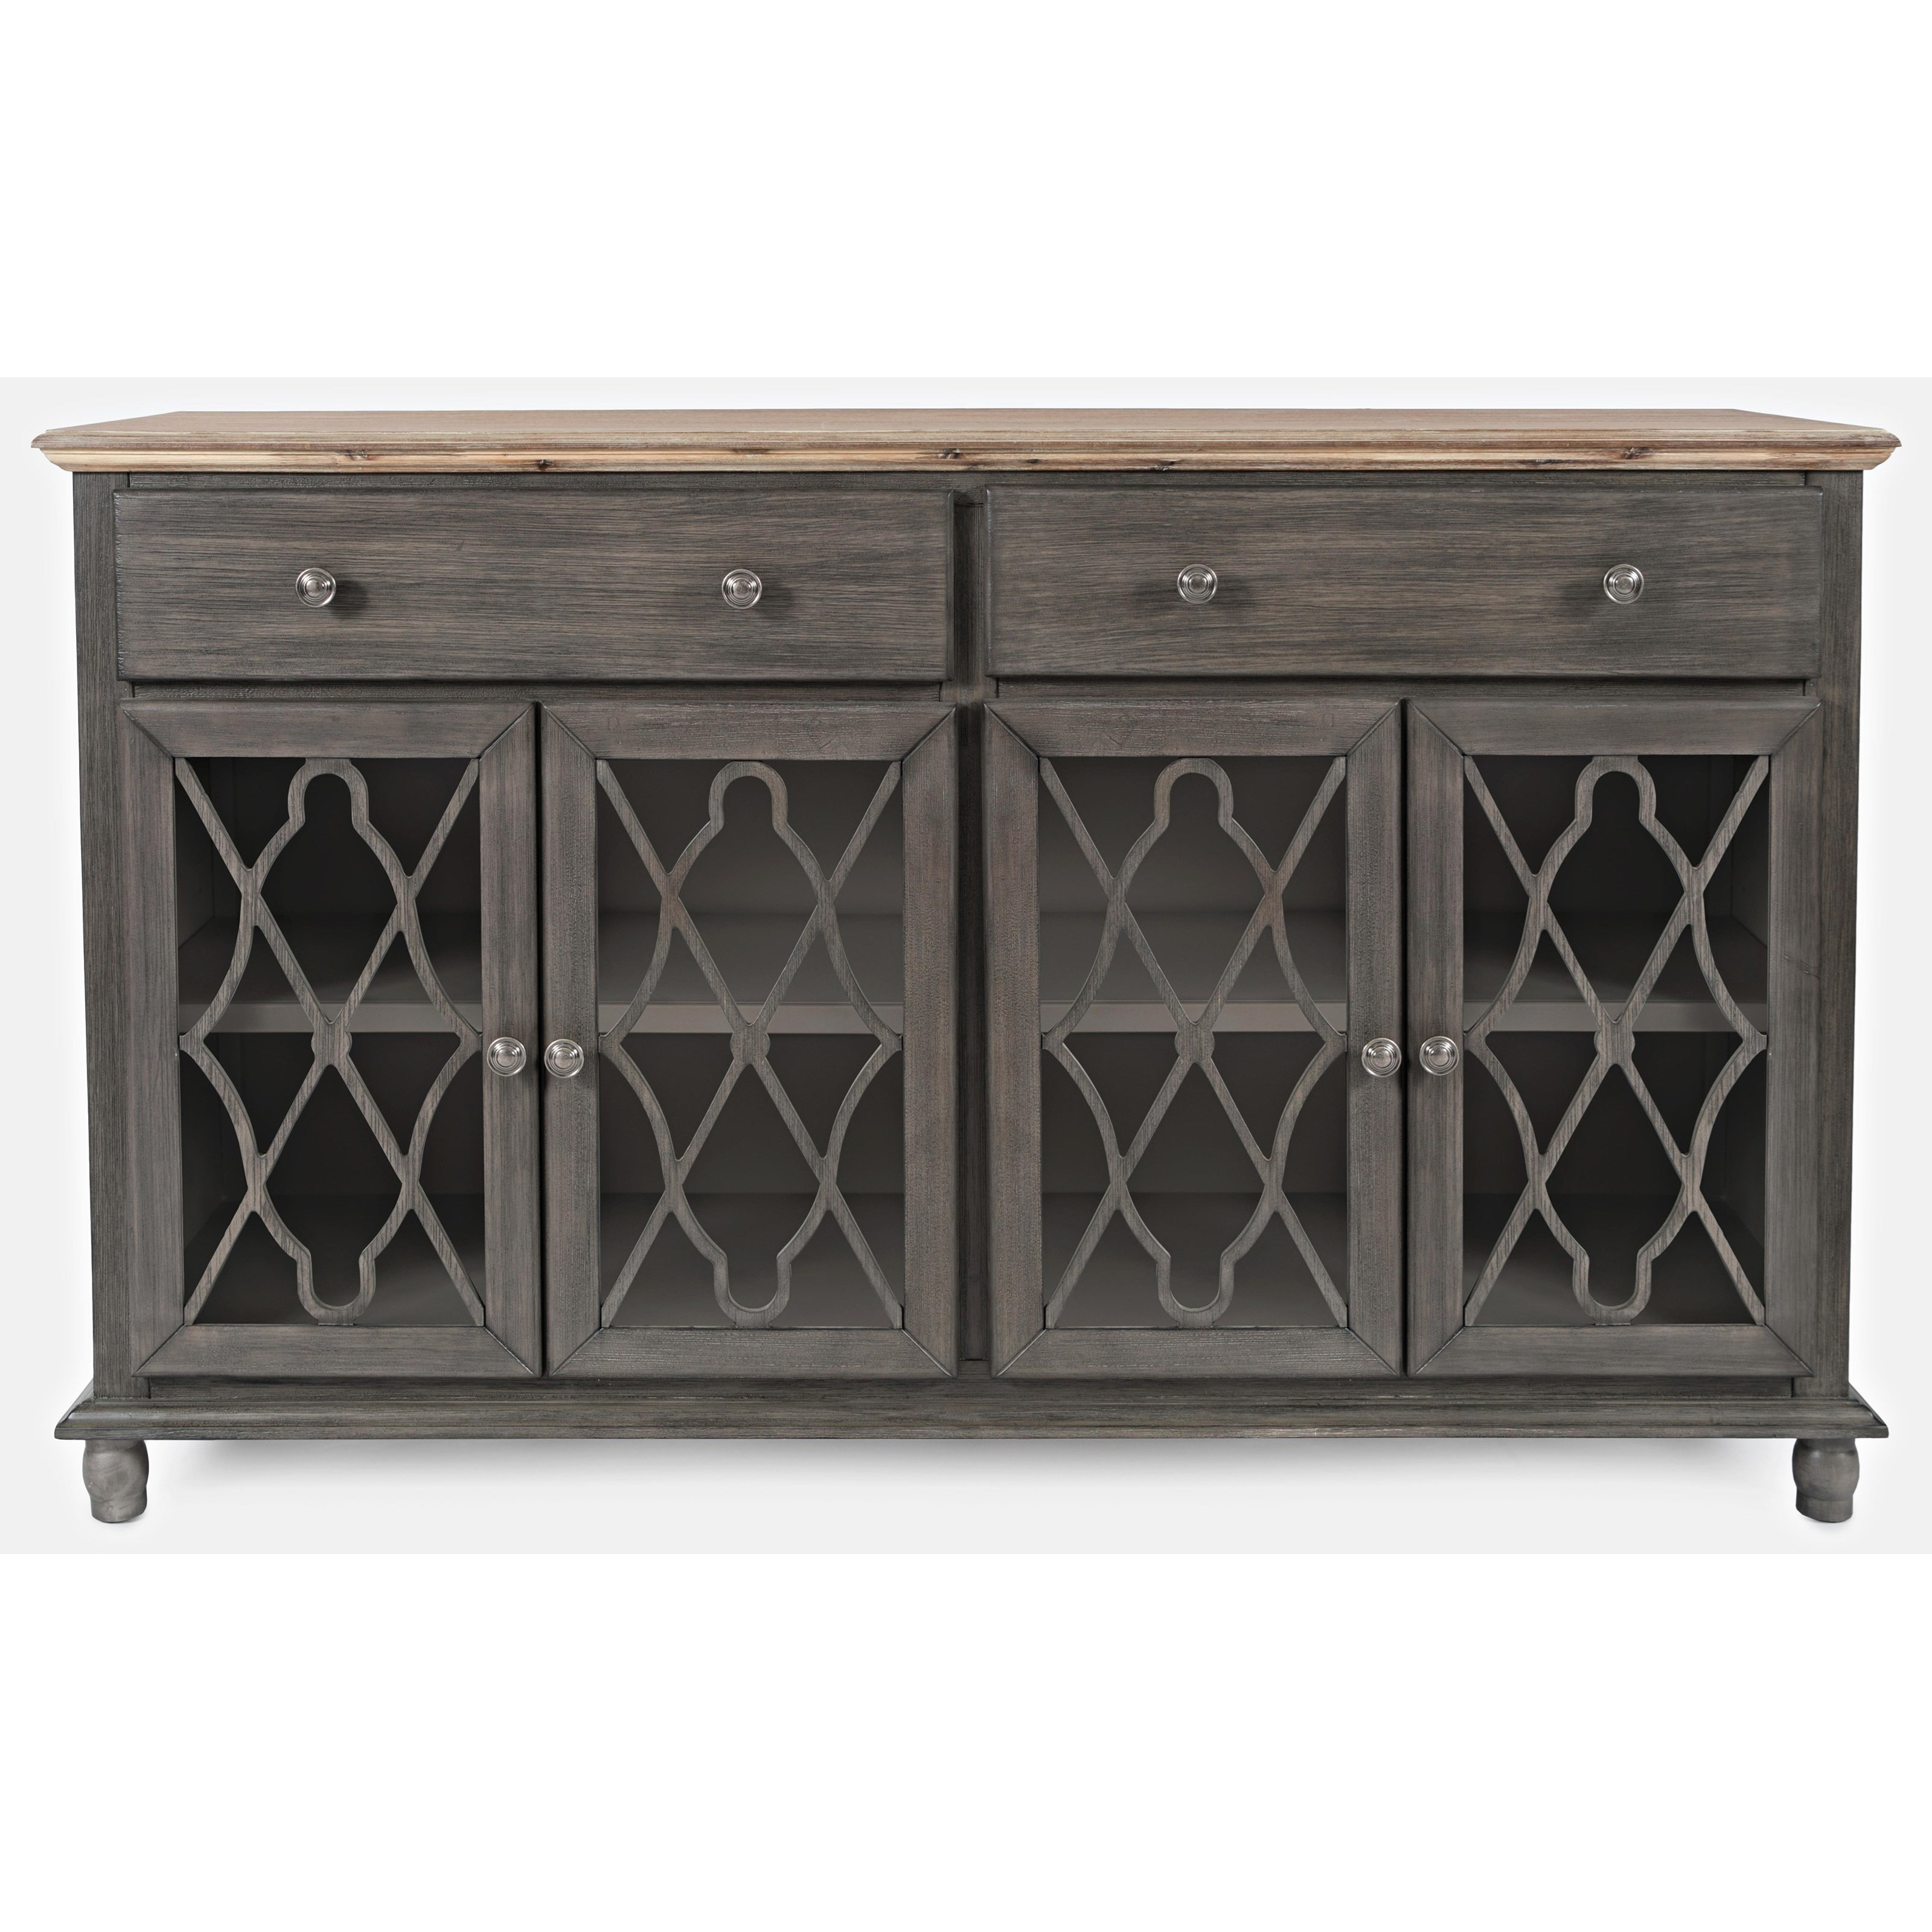 Aurora Hills 4-Door Accent Chest by Jofran at Sparks HomeStore